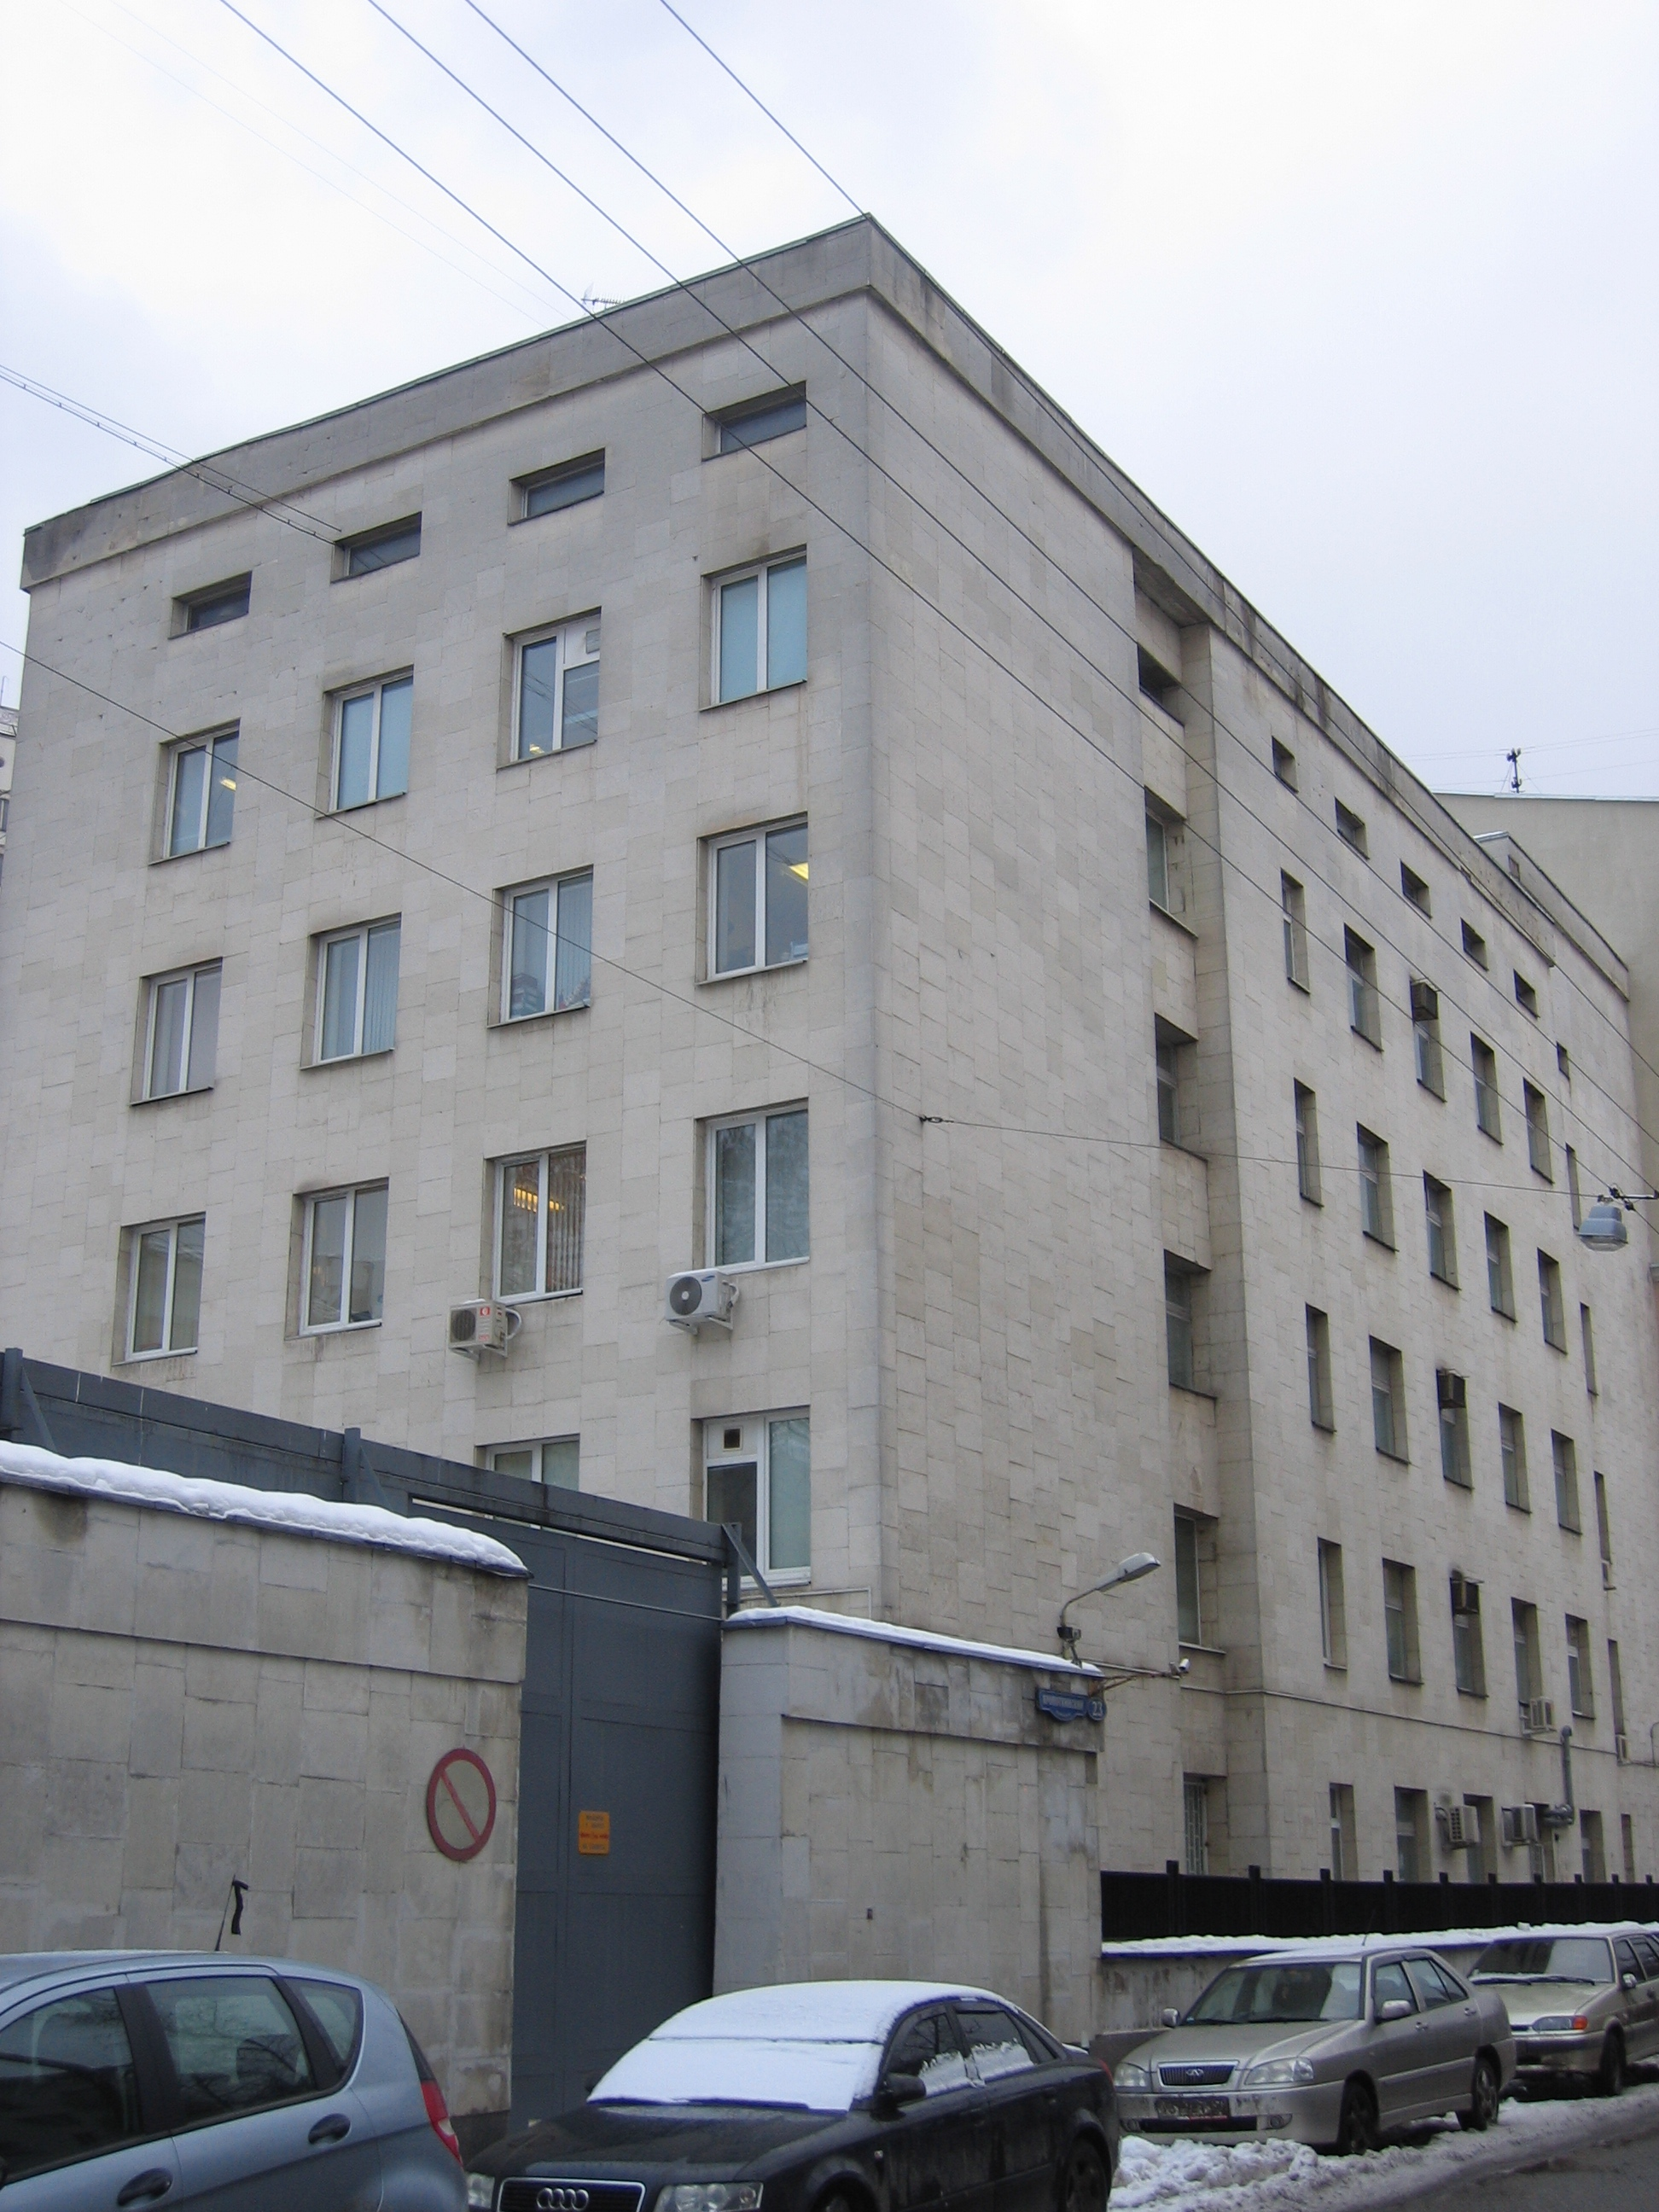 Political abuse of psychiatry in the Soviet Union - Wikipedia